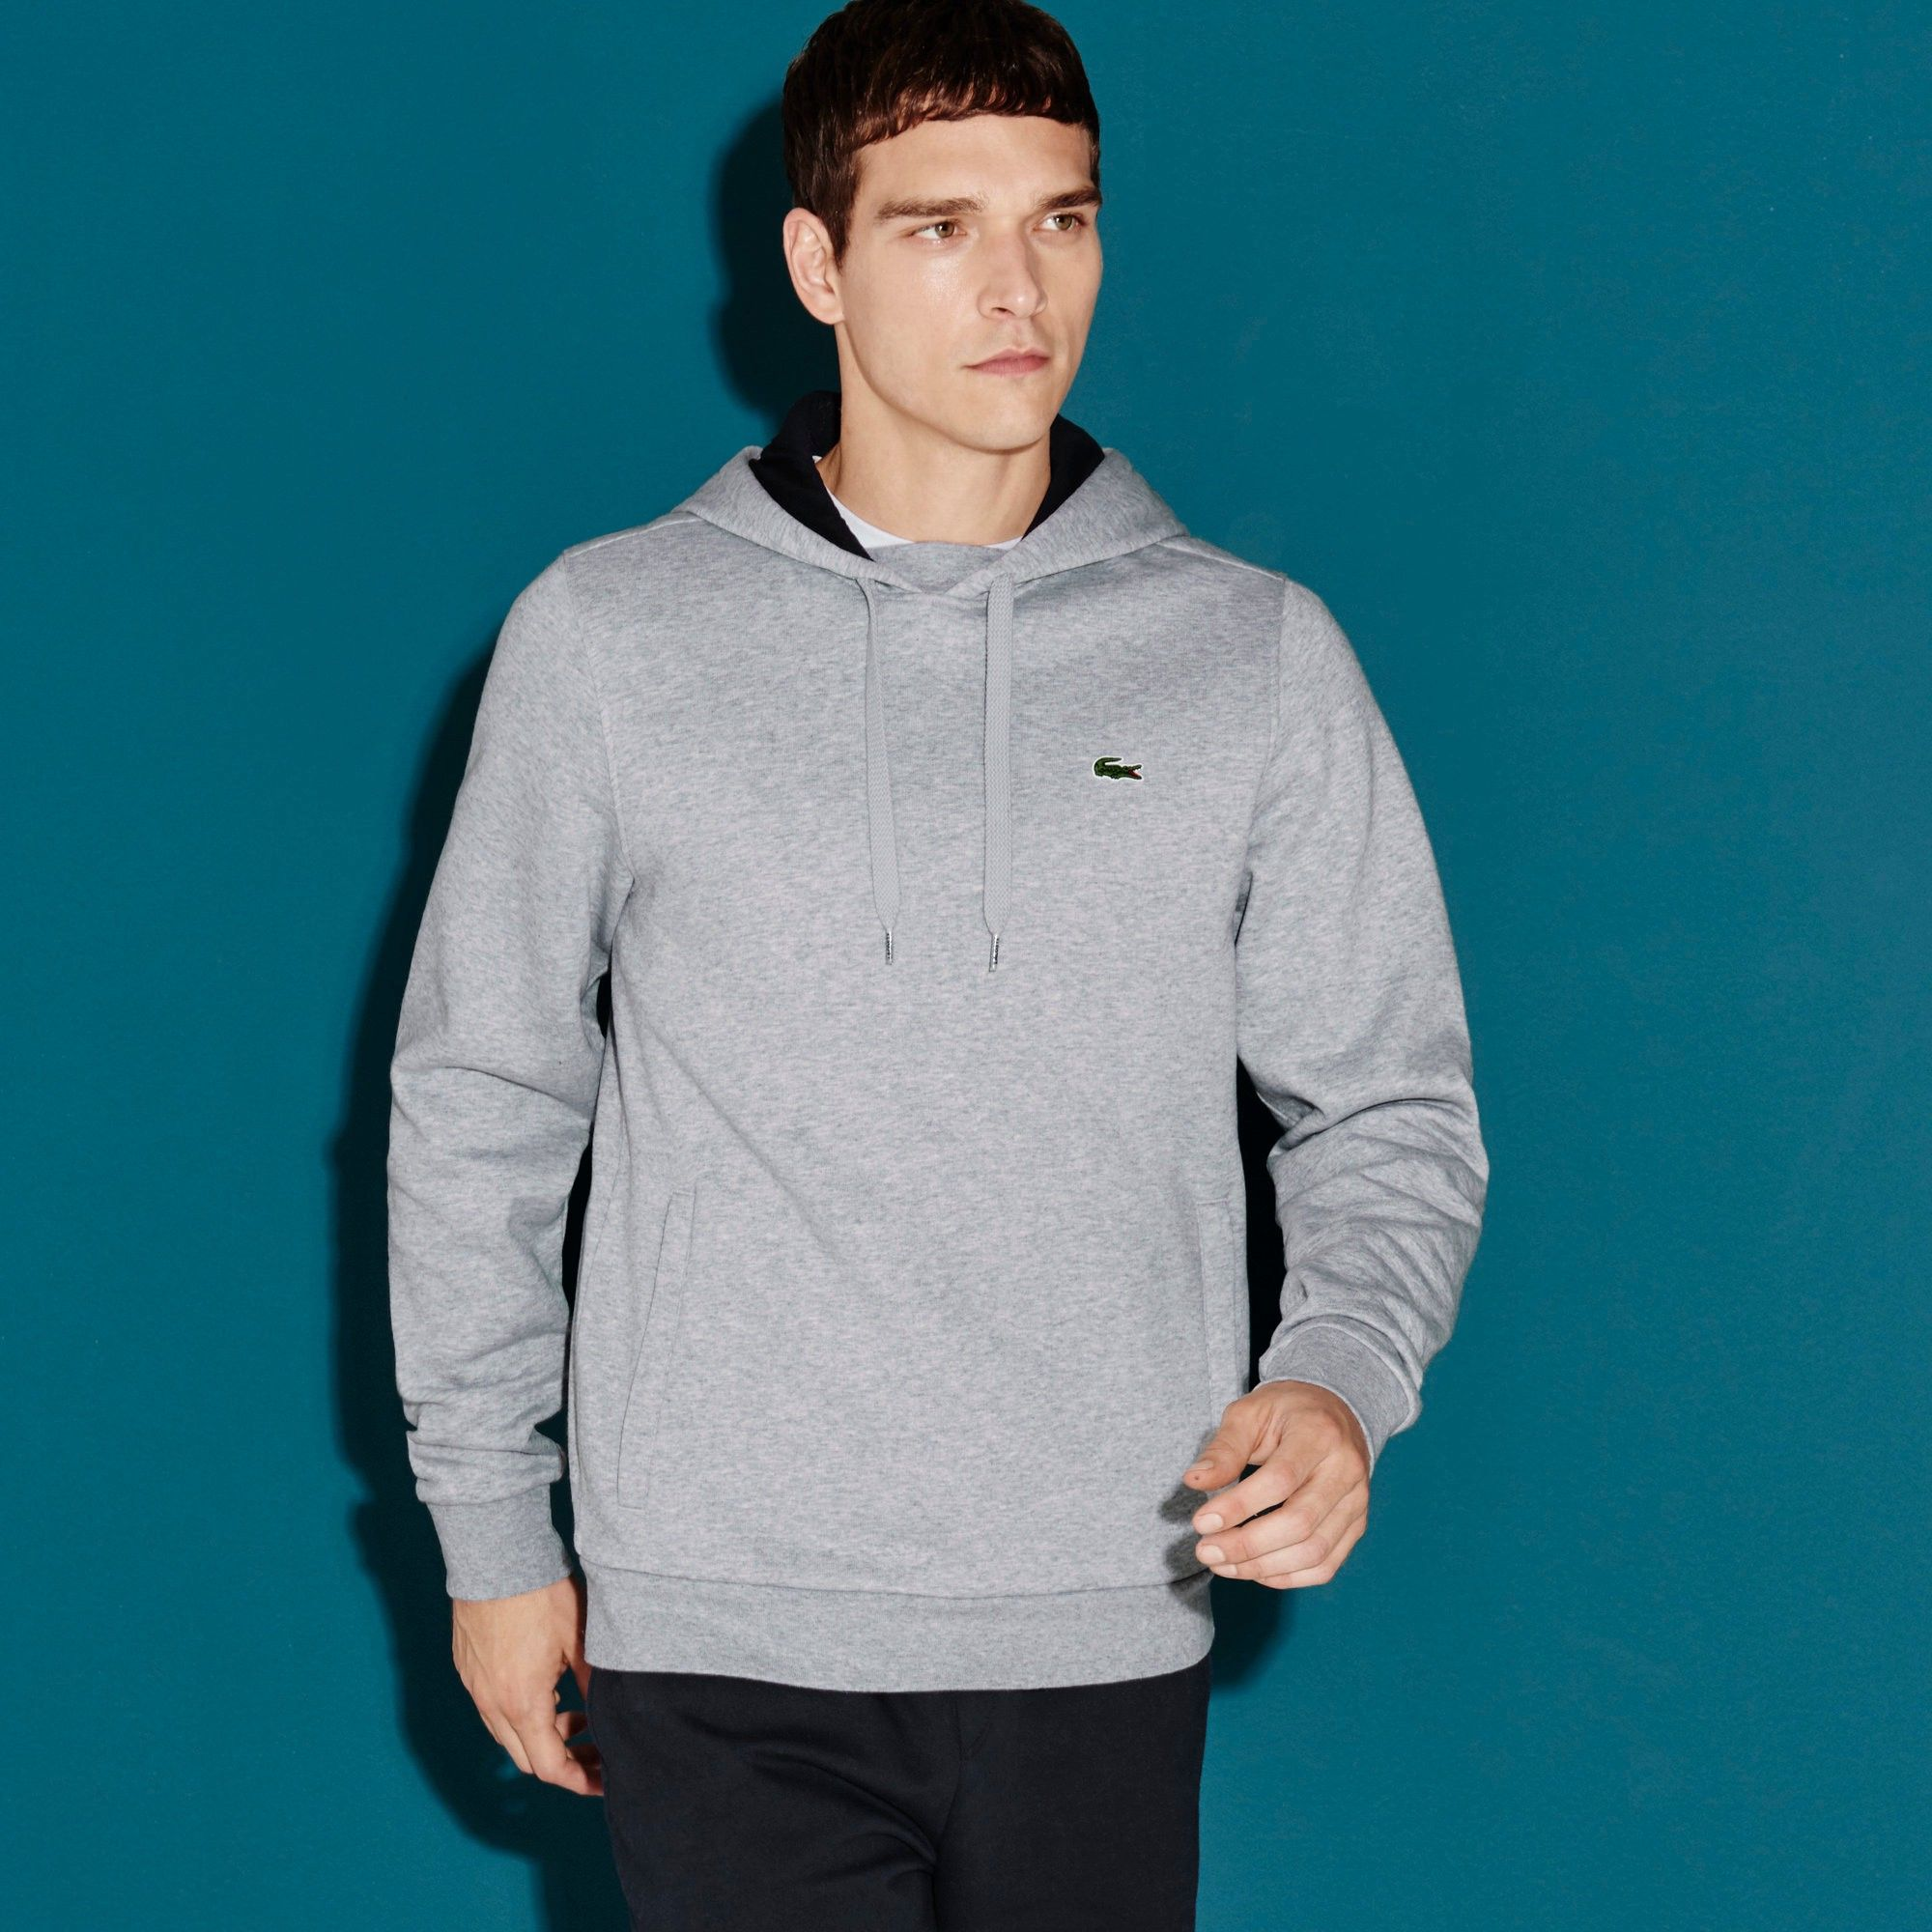 LACOSTE Men s Lacoste Sport Hooded Fleece Tennis Sweatshirt - silver navy  blue.  lacoste  cloth   82d6a750a0b9